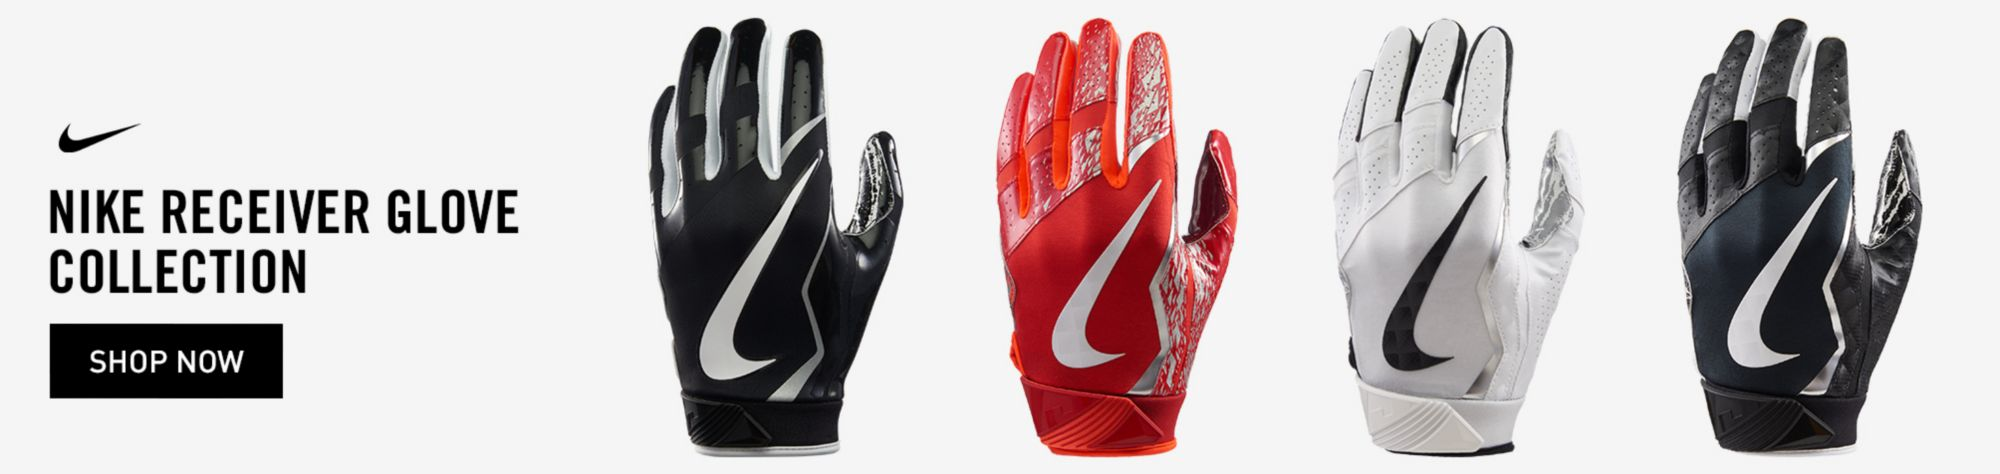 Shop Nike Vapor Jet Receiver Gloves